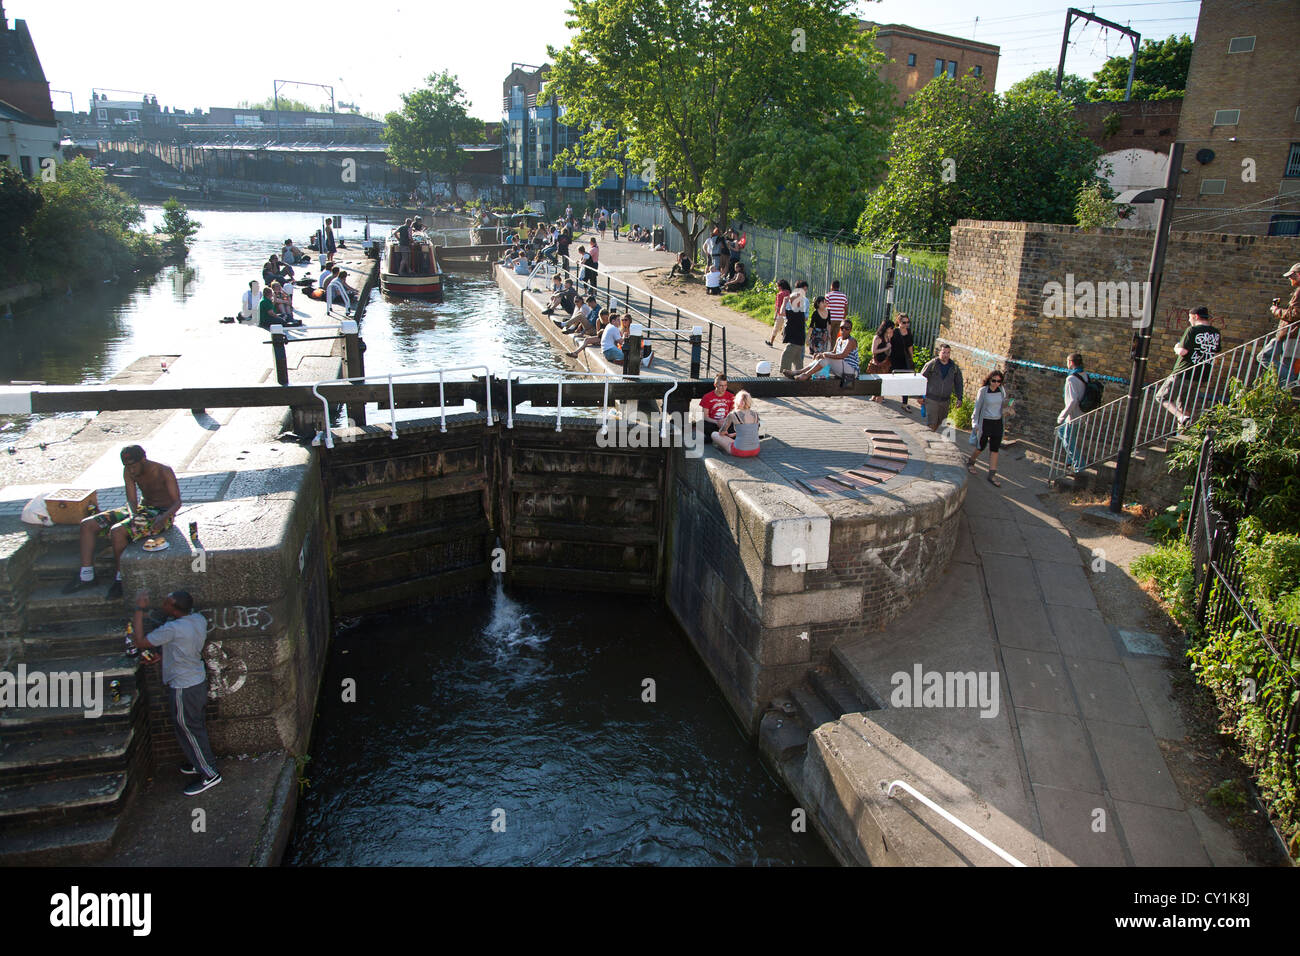 England. London. Camden Lock. People and Regent's Canal lock gates. - Stock Image